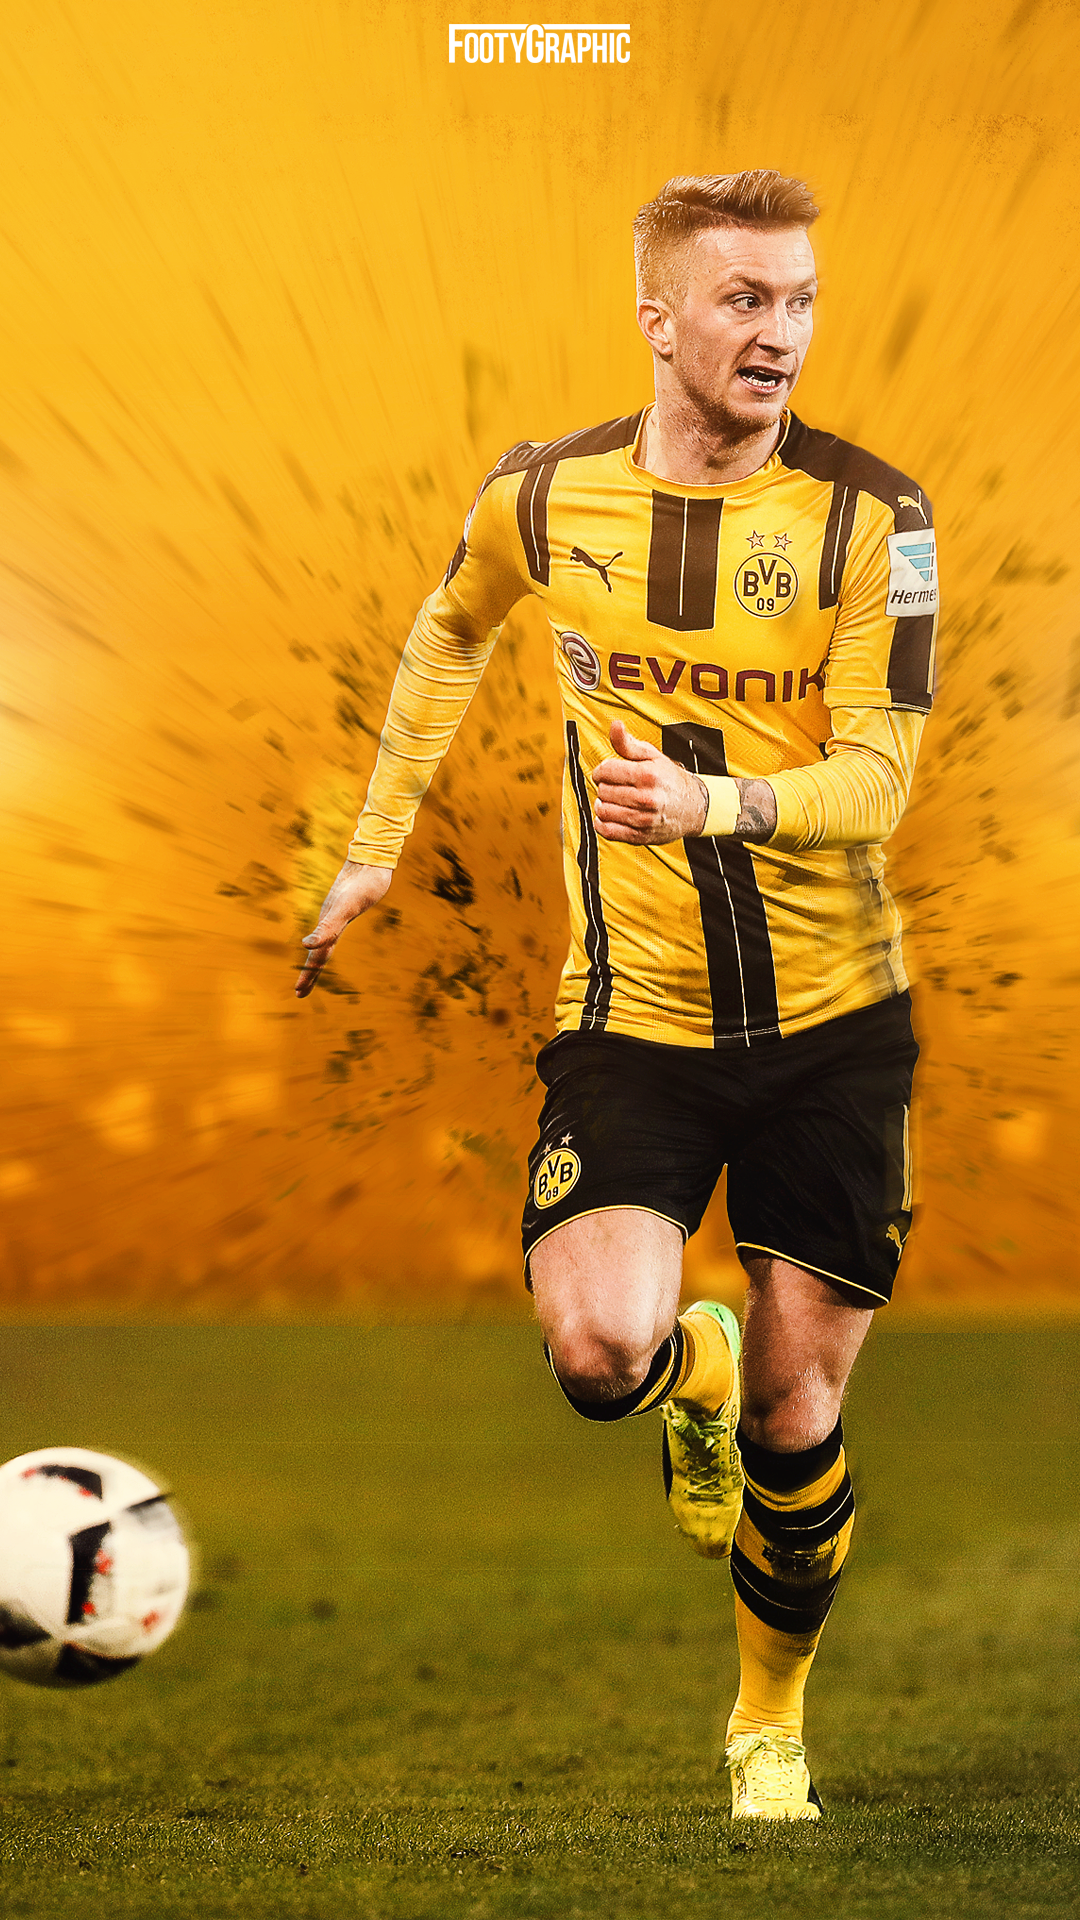 Football Mobile Phone Wallpapers On Behance